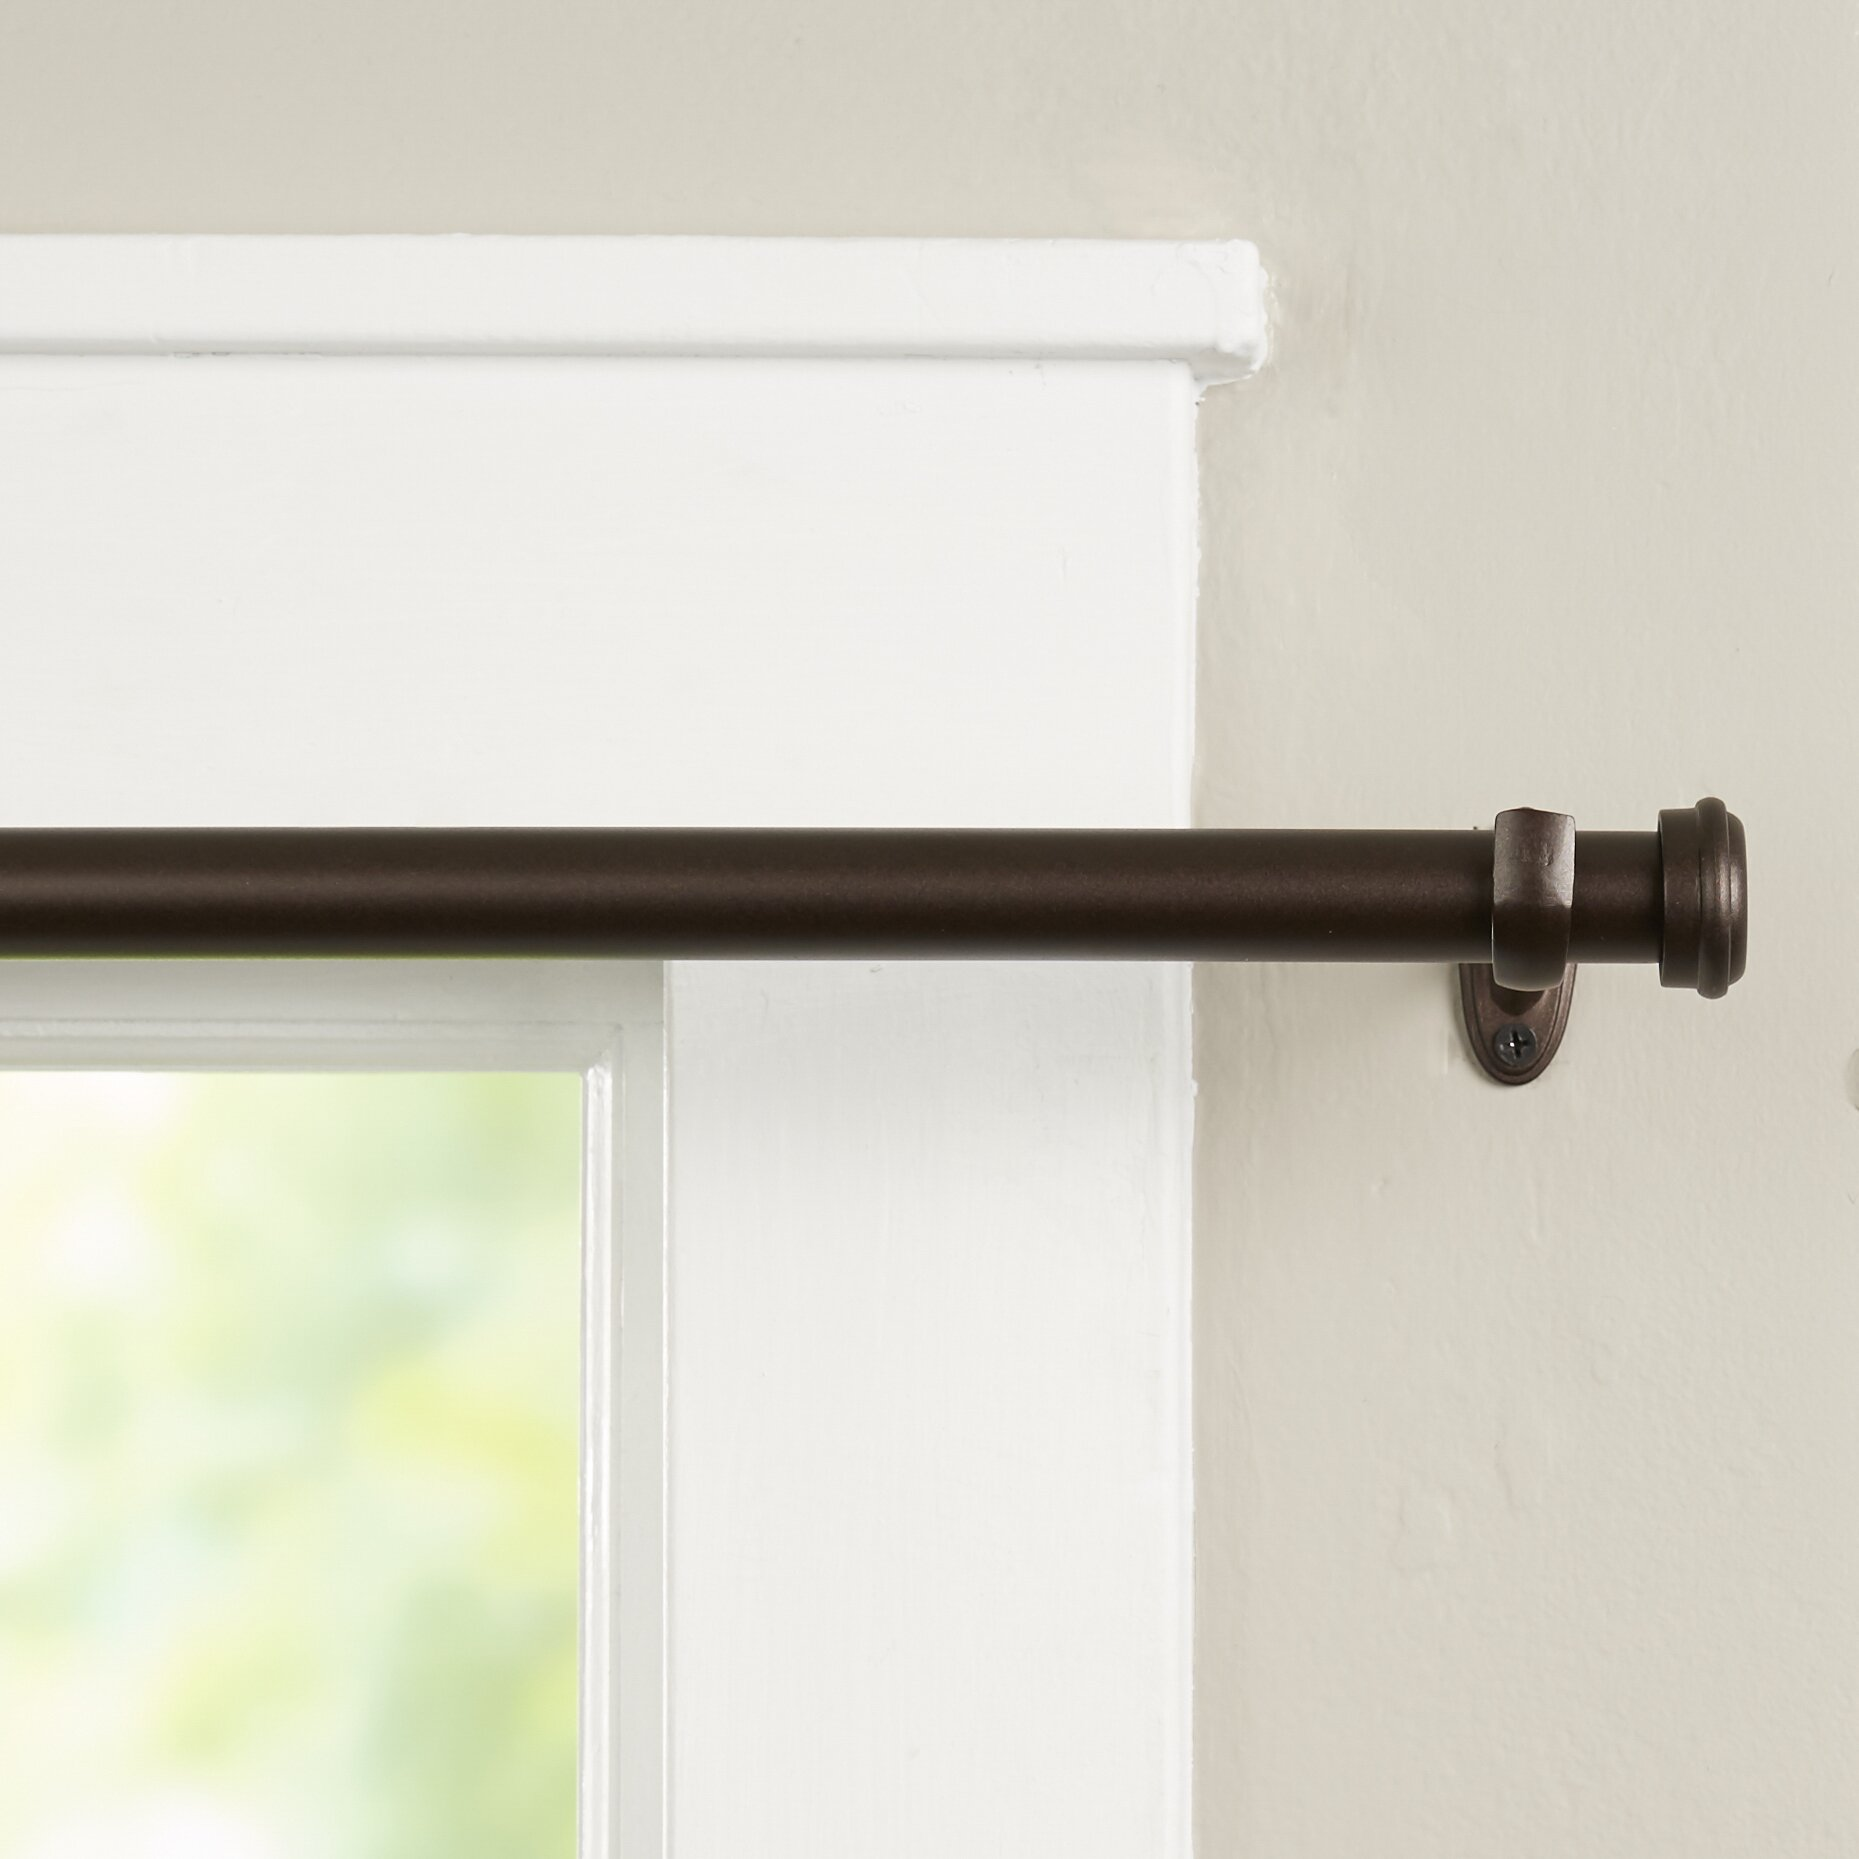 wayfair basics wayfair basics end cap single curtain rod